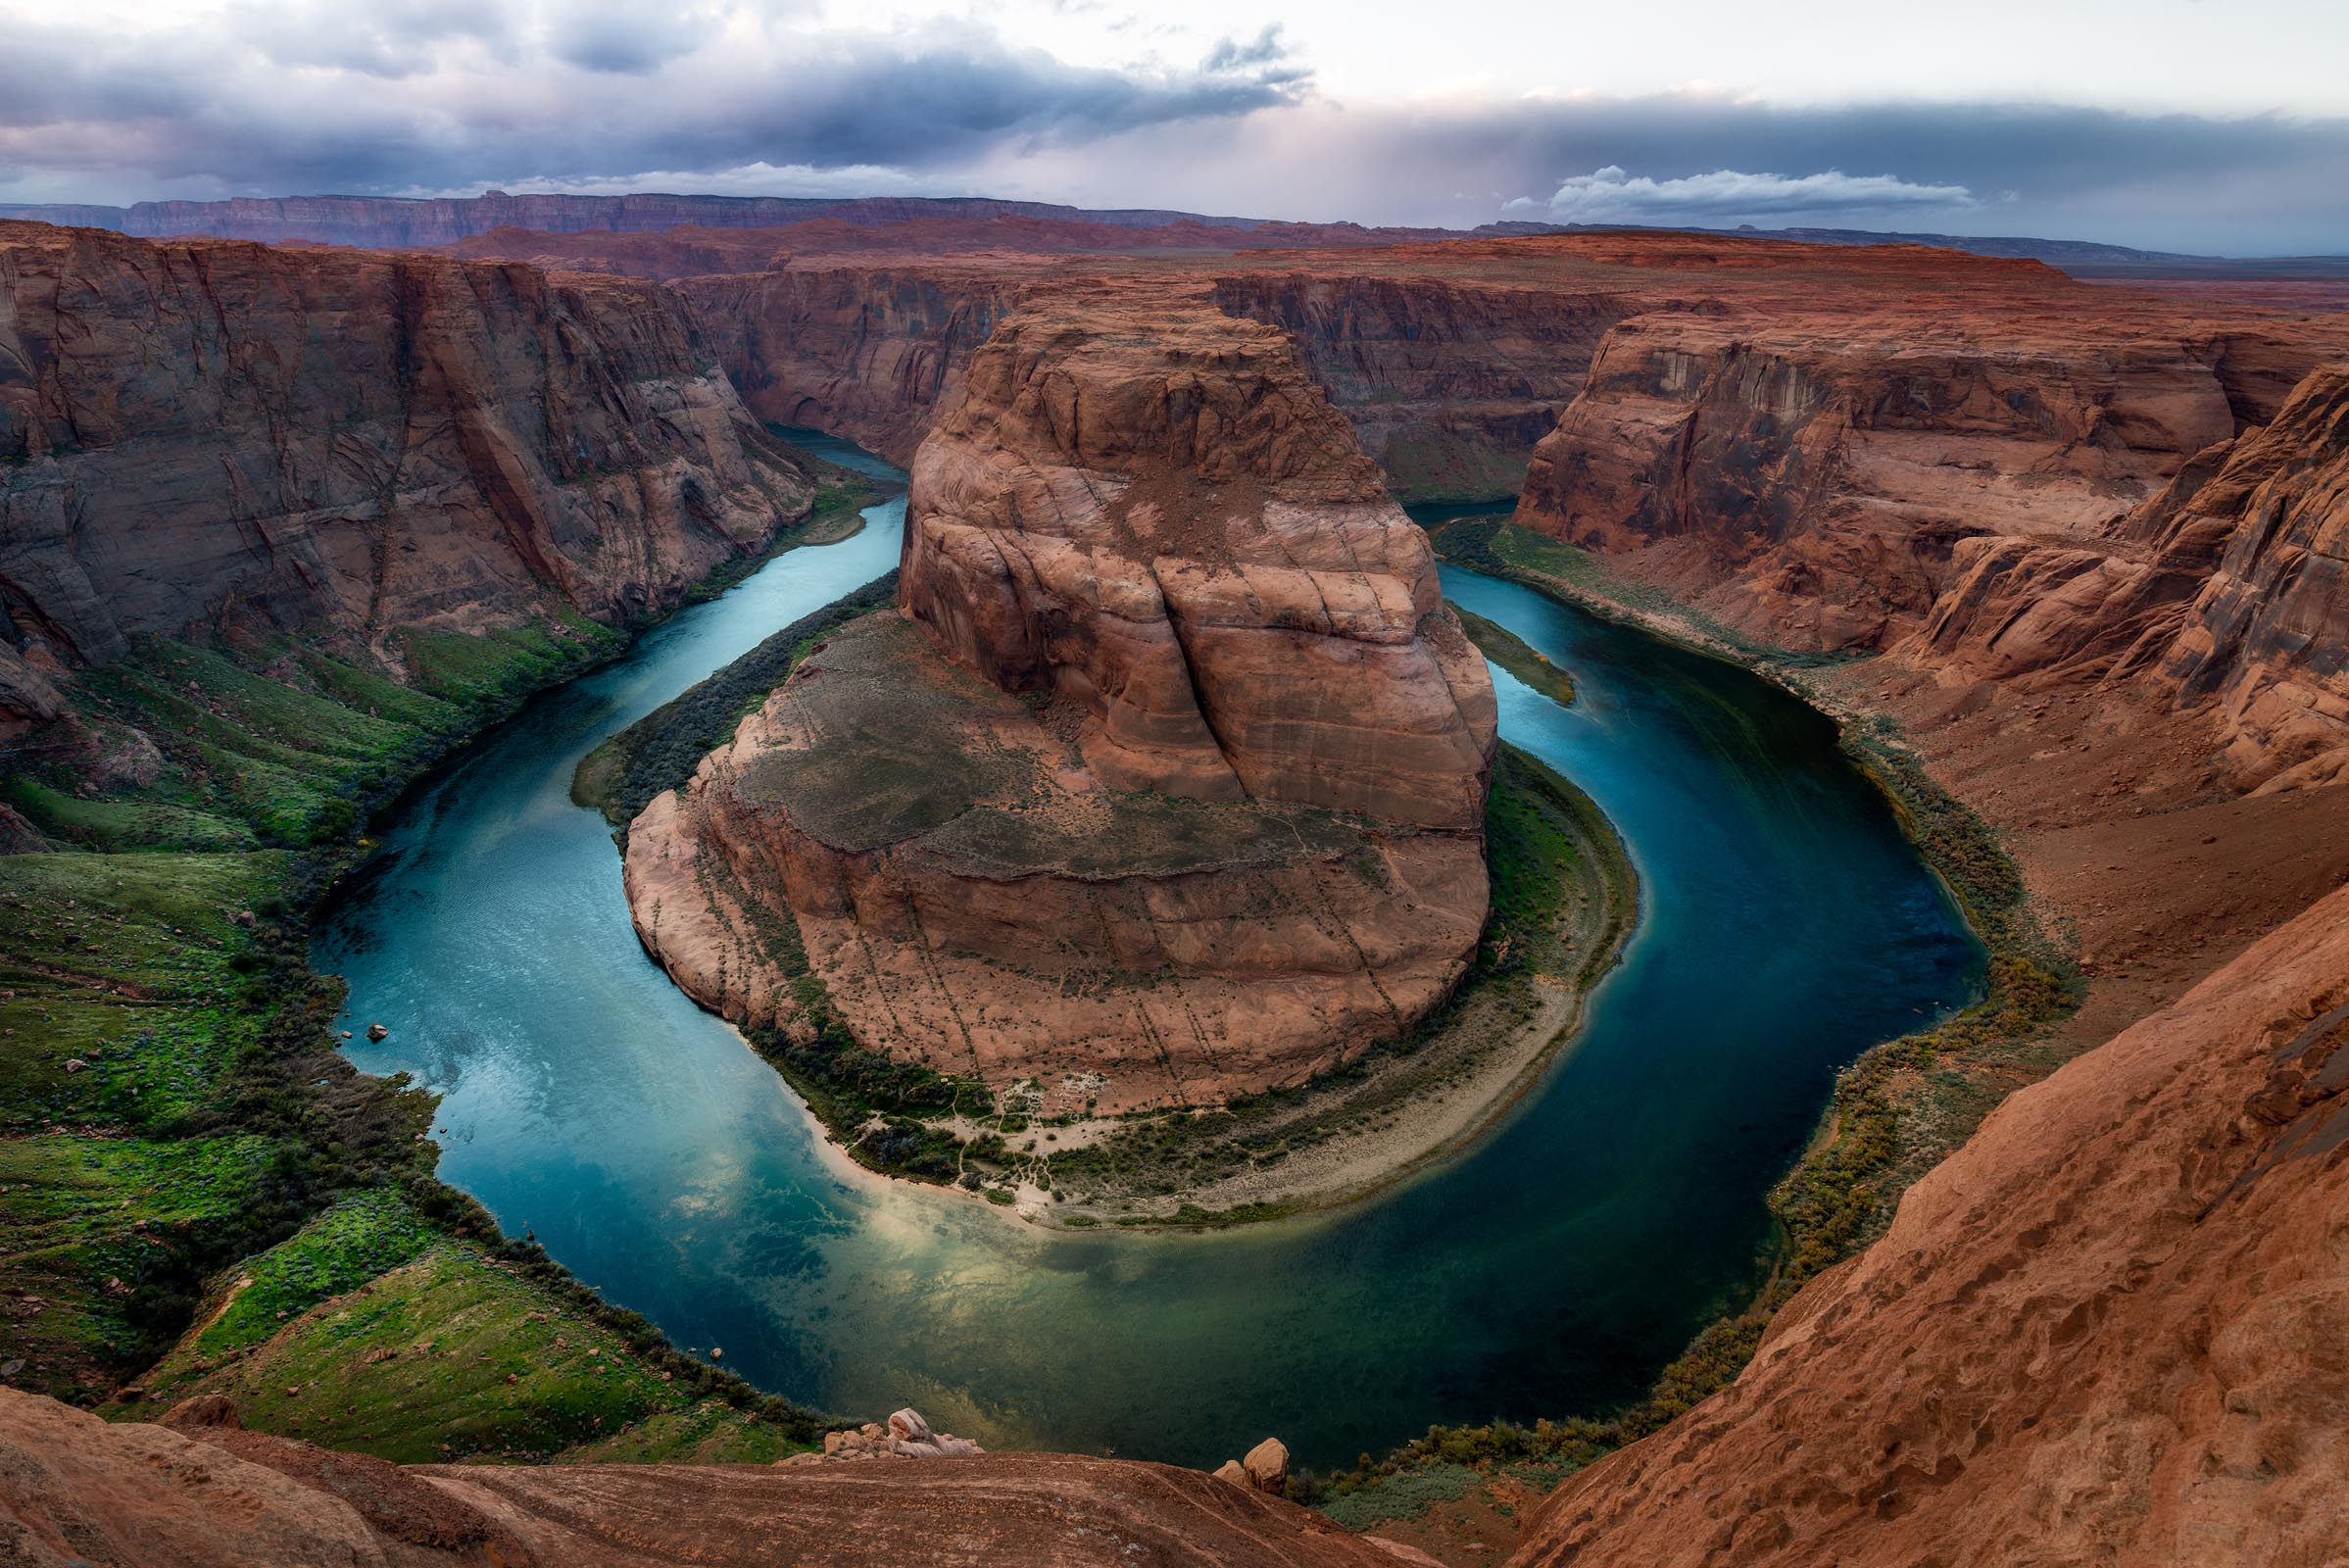 Photograph of Horseshoe Bend in Page, Arizona by Brent Goldman Photography